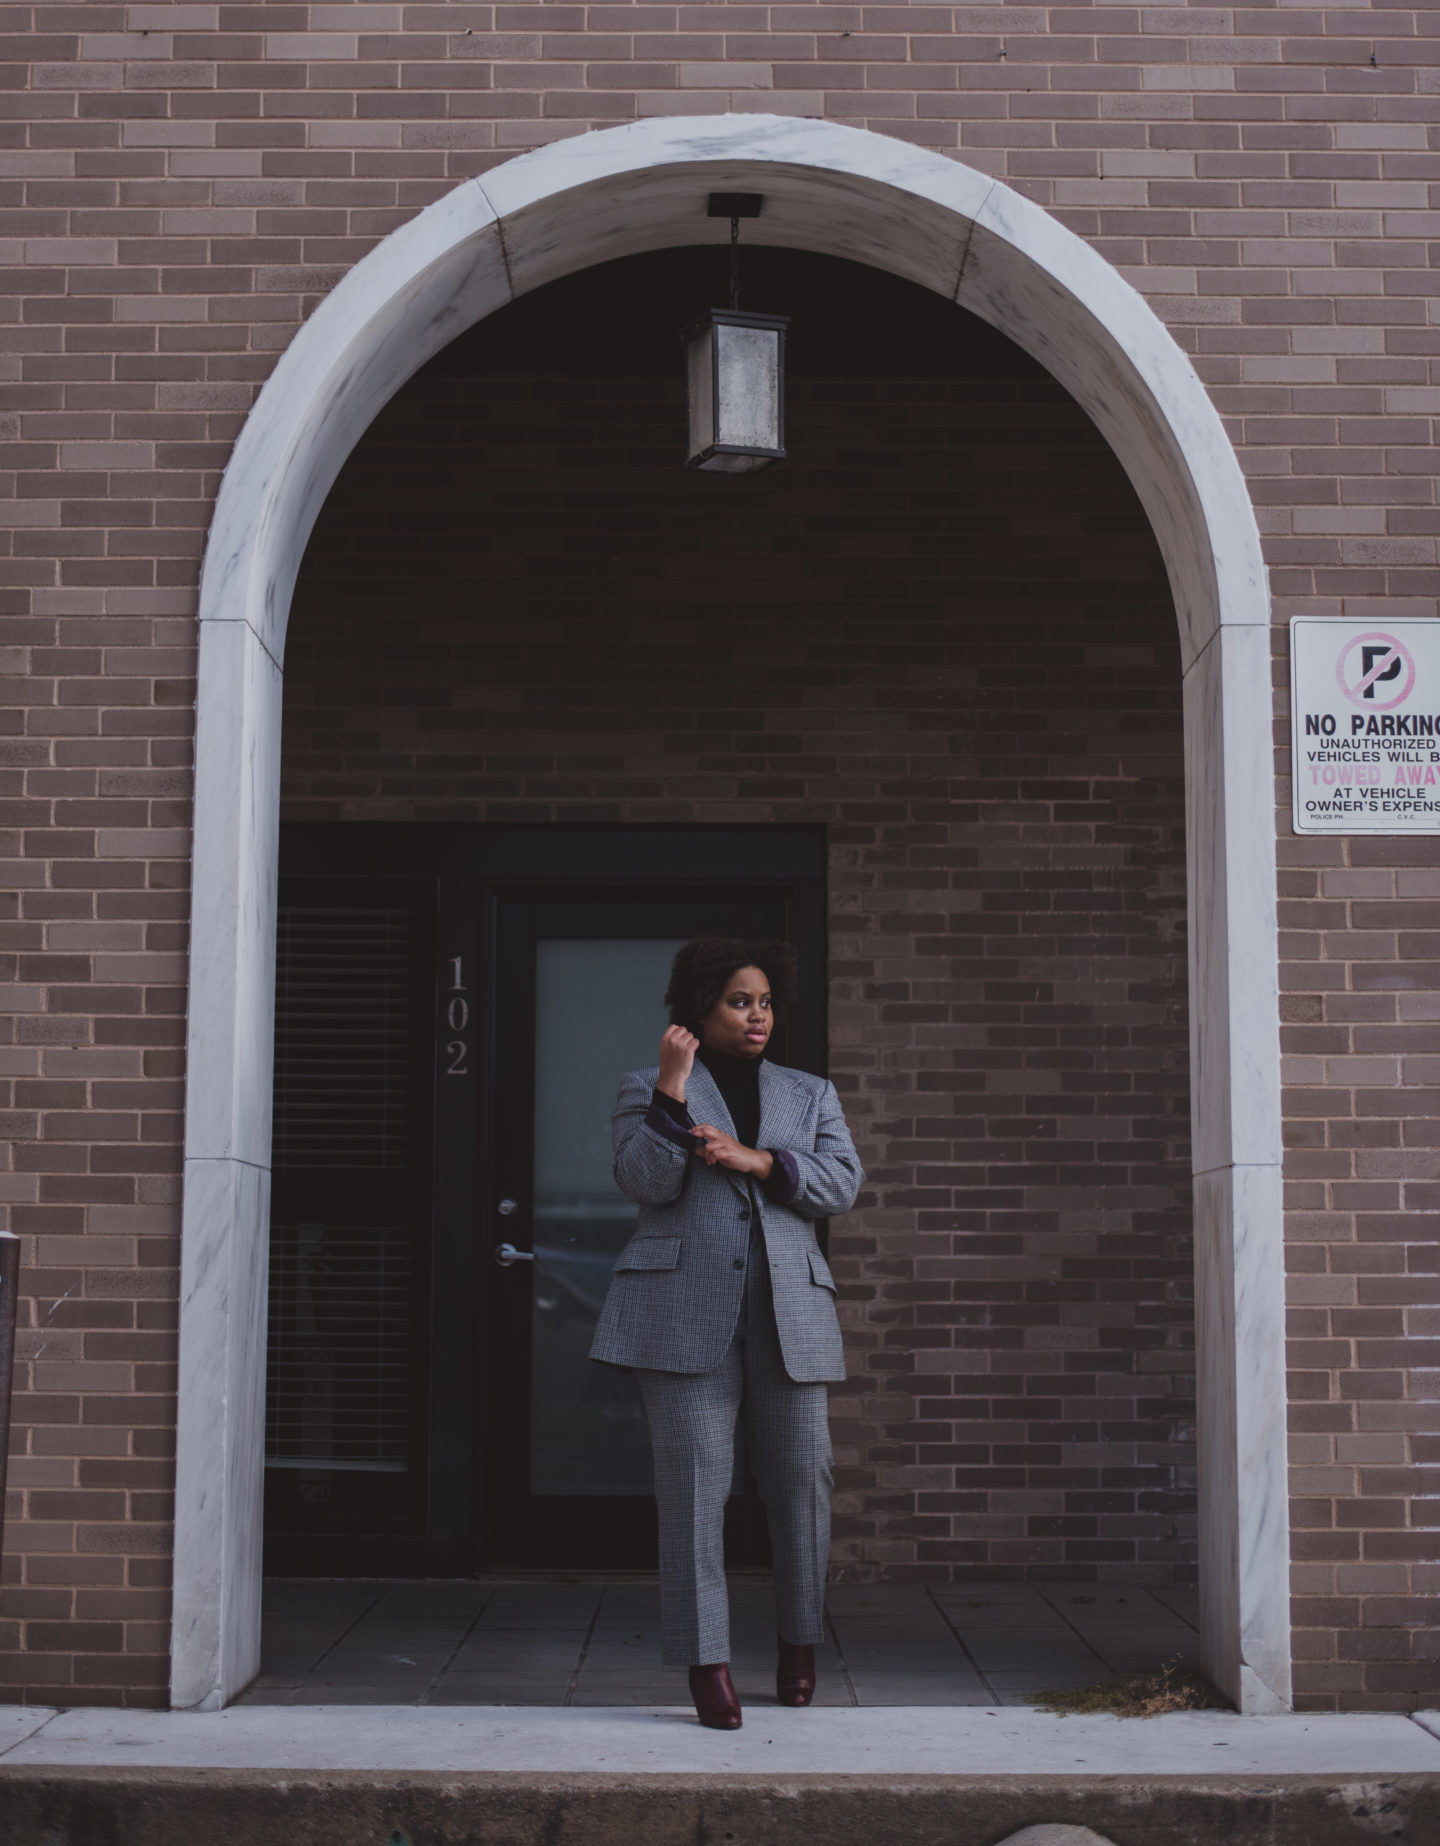 woman standing in blue suit in entry way